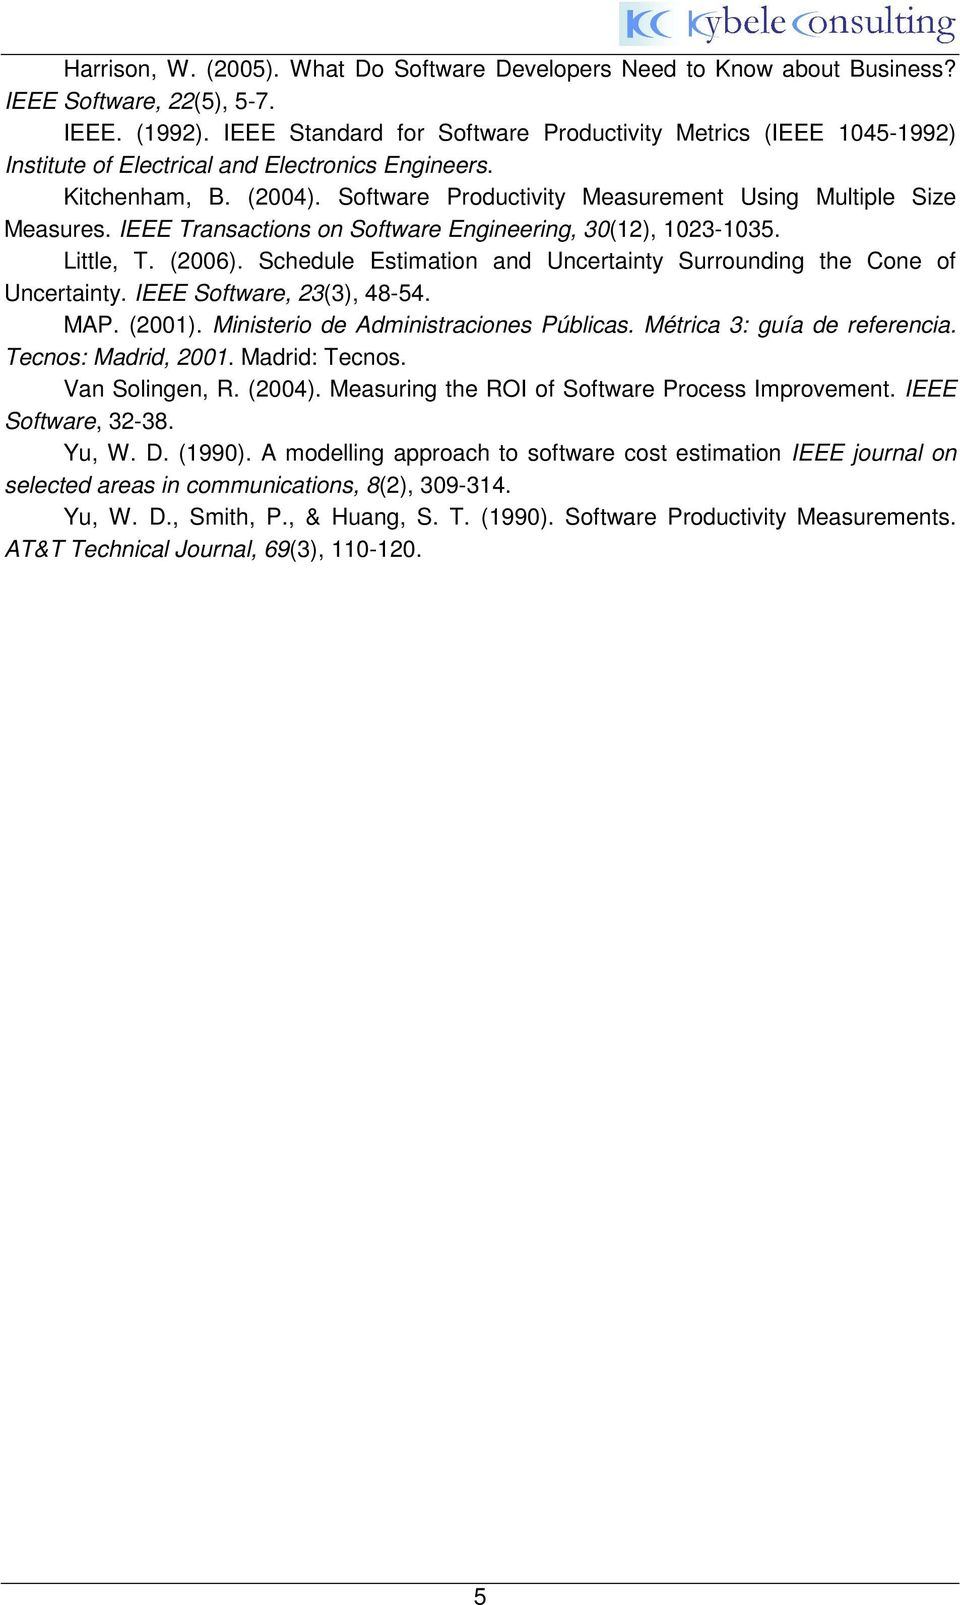 Software Productivity Measurement Using Multiple Size Measures. IEEE Transactions on Software Engineering, 30(12), 1023-1035. Little, T. (2006).